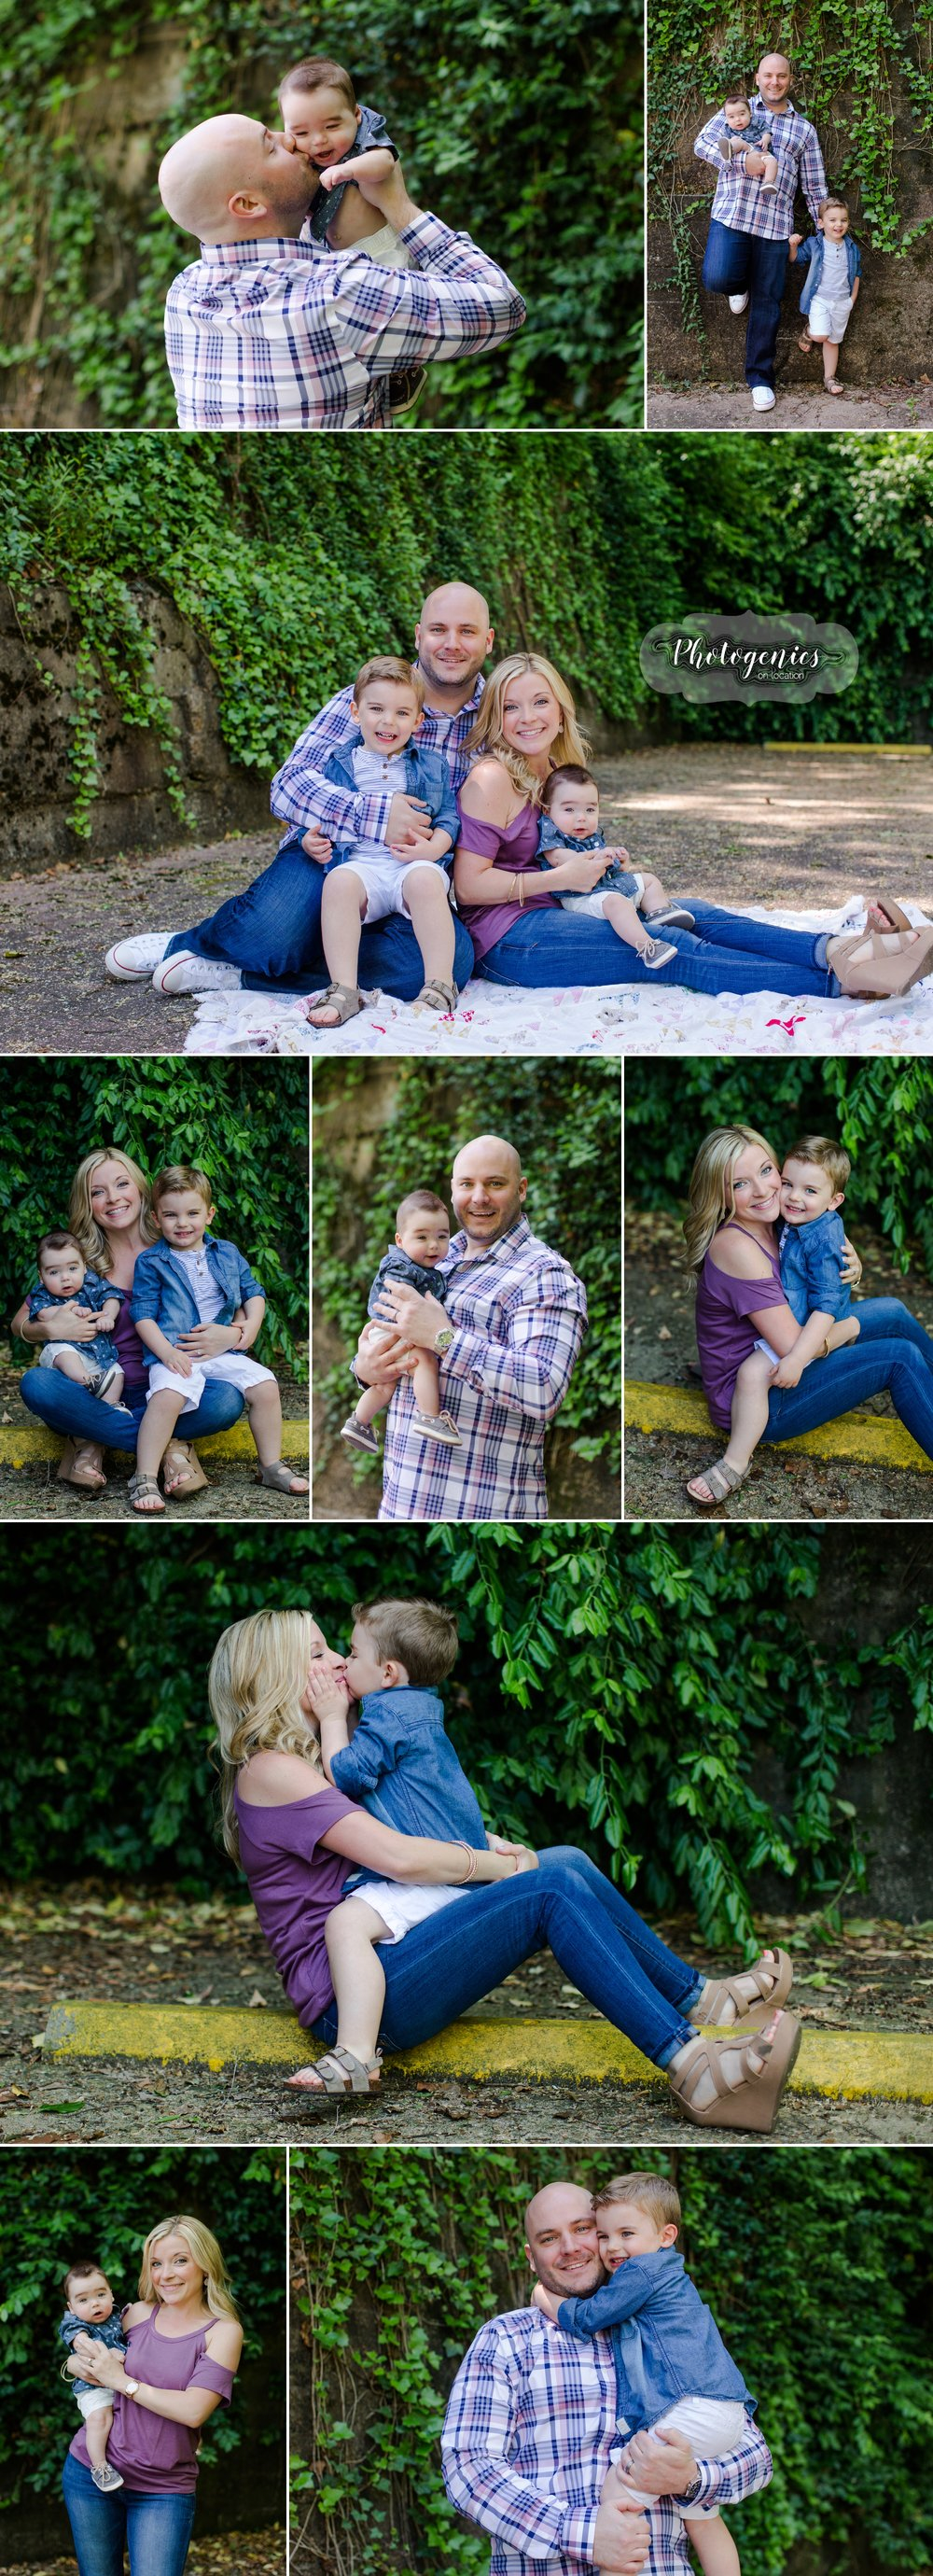 family_spring_boys_four_photography_what_to_wear_ideas_poses_brothers_baby_st_louis_pictures